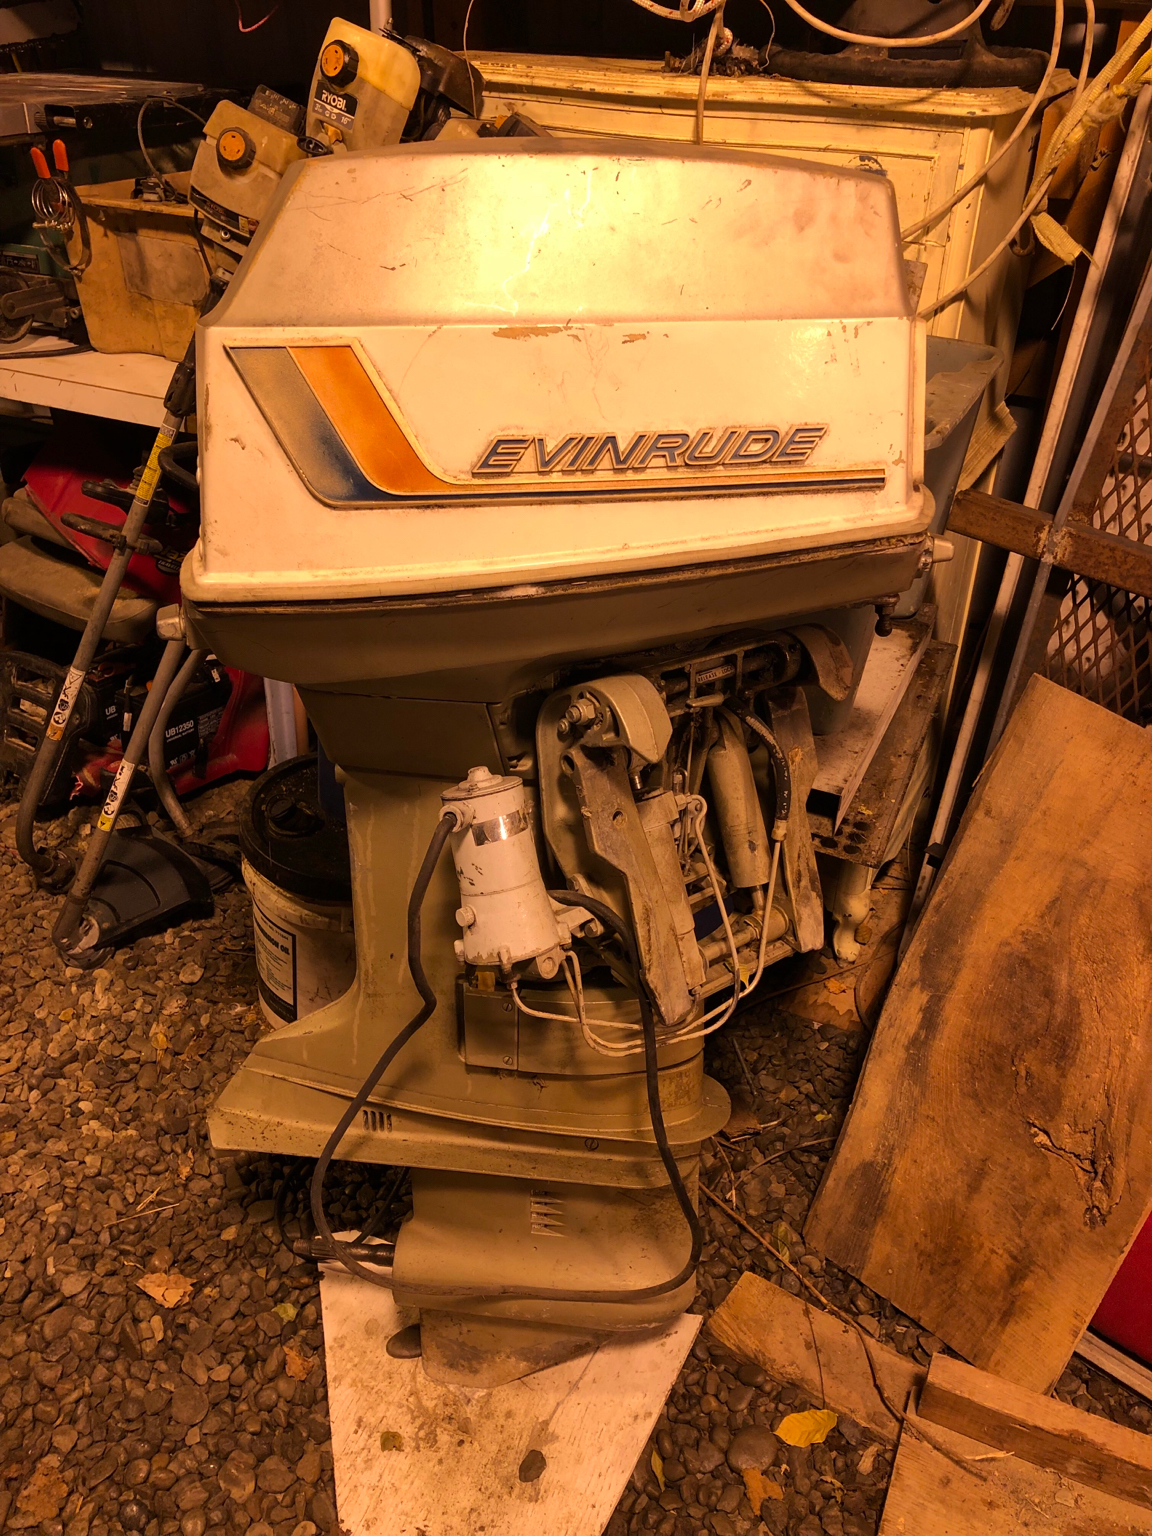 Evinrude 125 Hp Outboard 1972 700 Classifieds Buy Sell Trade Or Rent Lake Ontario United Lake Ontario S Largest Fishing Hunting Community New York And Ontario Canada